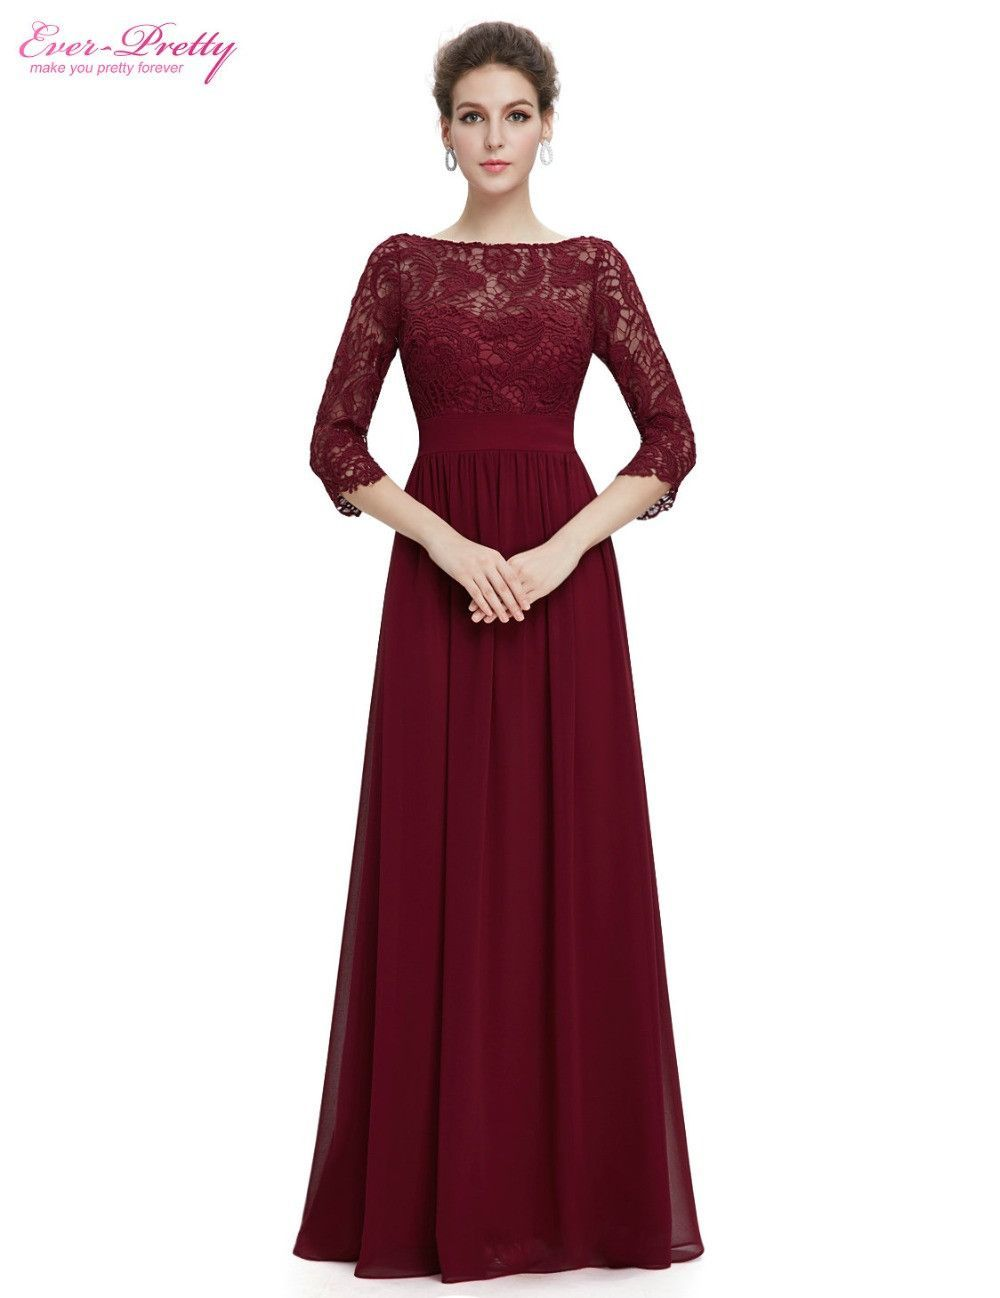 Occasion  Formal Evening Item Type  Evening Dresses Waistline  Empire  is customized  No Fabric Type  Satin Dresses Length  Floor-Length Neckline   O-Neck ... 91cfa6a9f84a